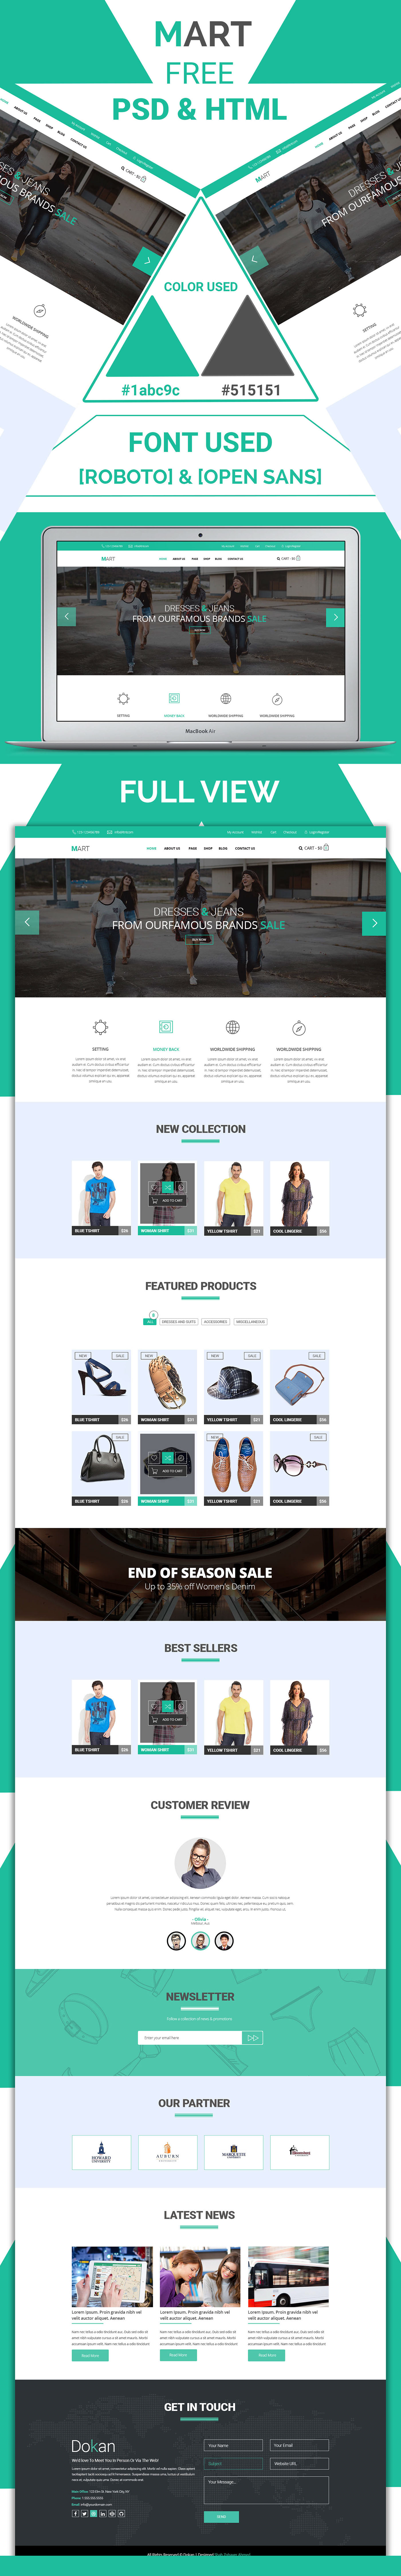 psd free freebie bootstrap clean Ecommerce HTML Responsive shop clothes HTML Template UI ux css3 store